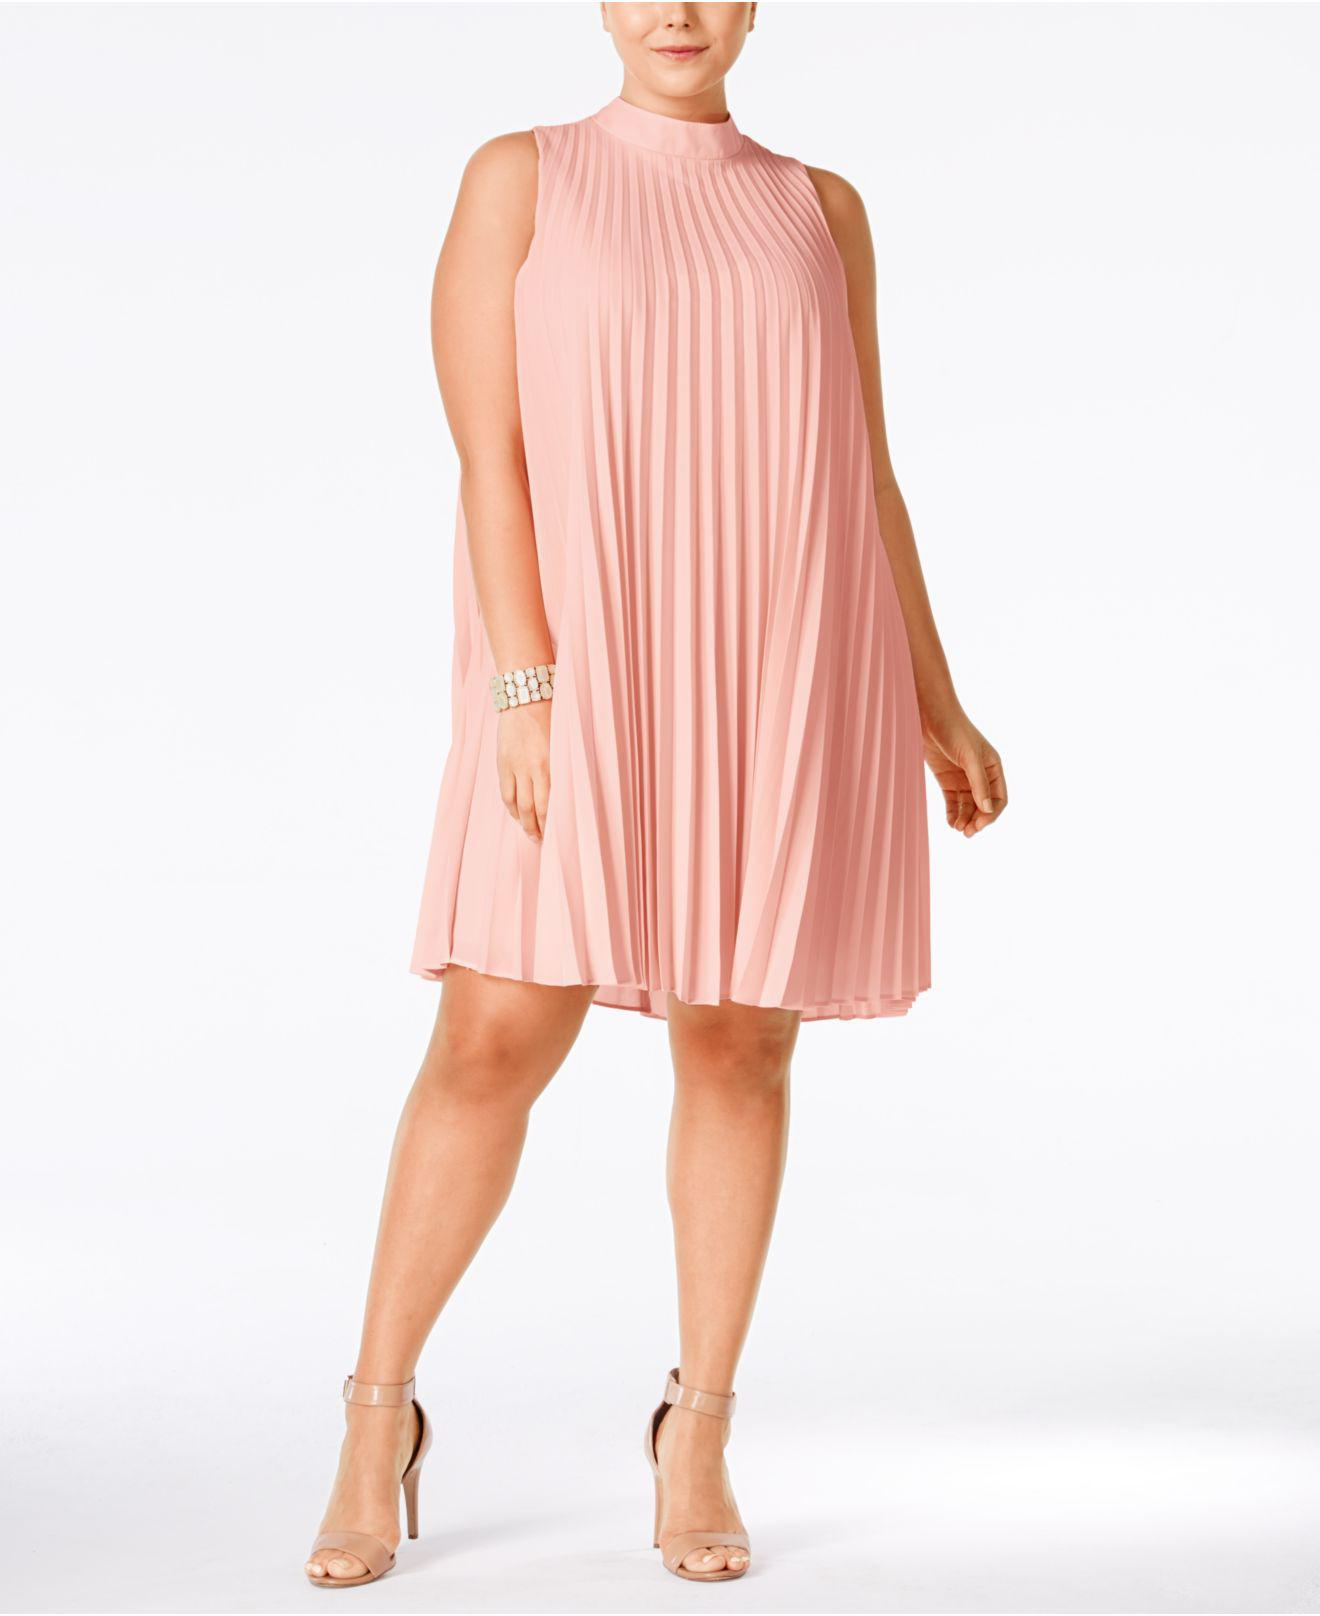 383340b97961b Soprano Plus Size High-neck Pleated Shift Dress in Pink - Lyst